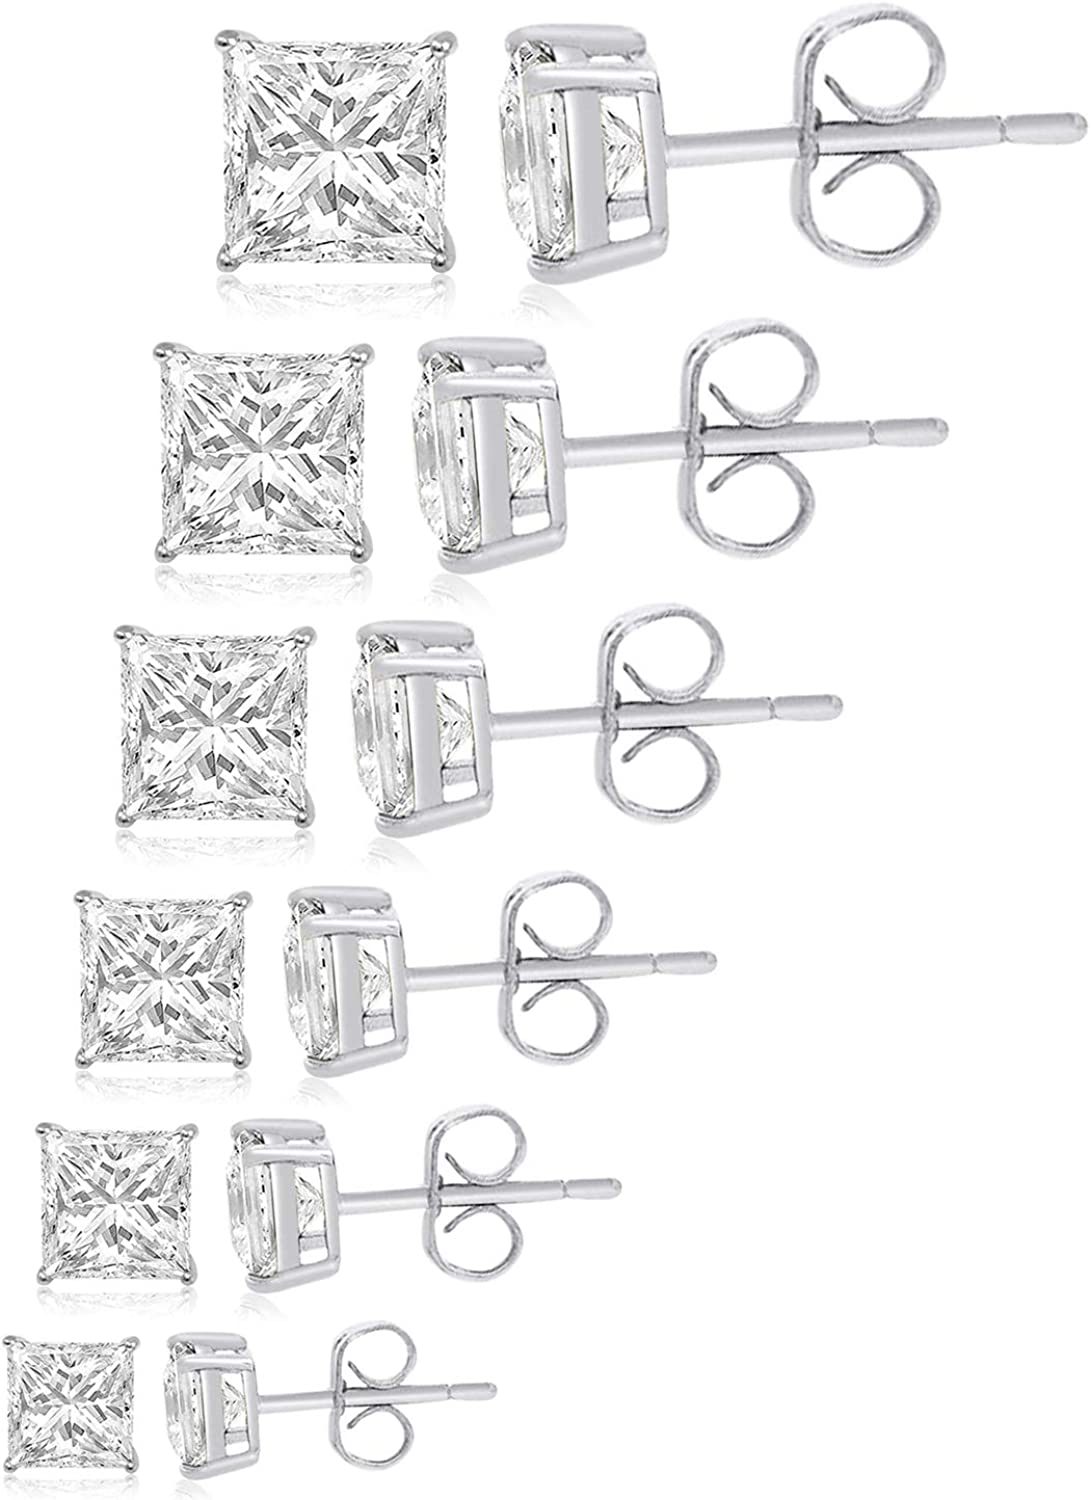 TIONEER Sterling Silver Stud Earring Set (Pack of 6 Pairs) for Women and Men, Cubic Zirconia Round Cut & Princess Cut, (Black, Silver, Rose Gold), 4mm - 9mm